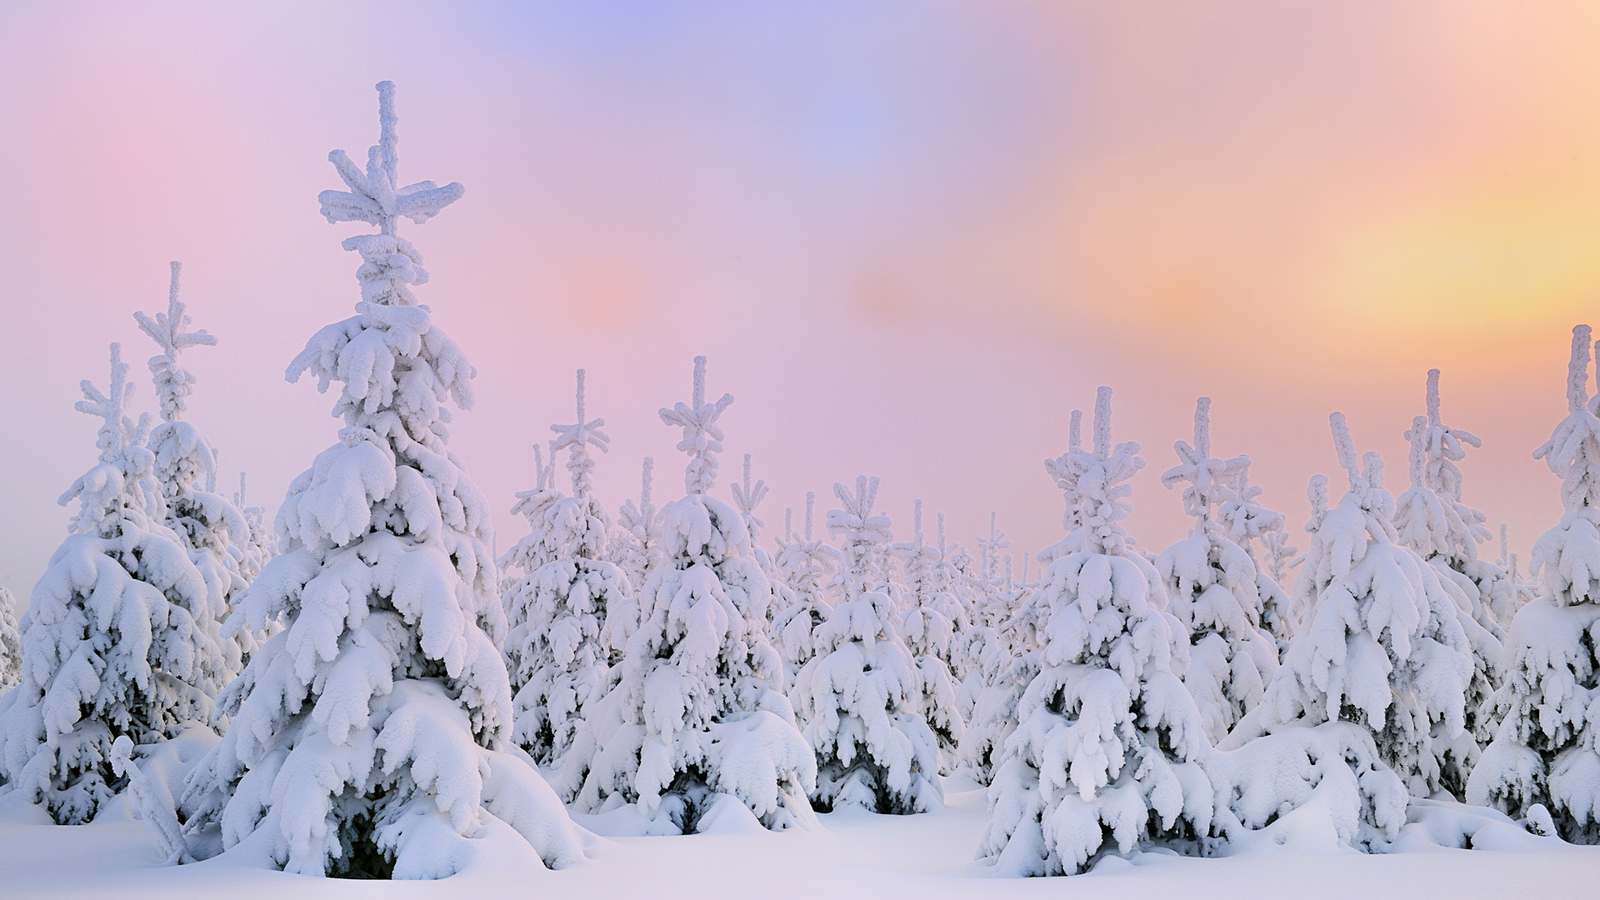 Winter Snow Desktop Wallpaper Hd 49817 Dongxue Series